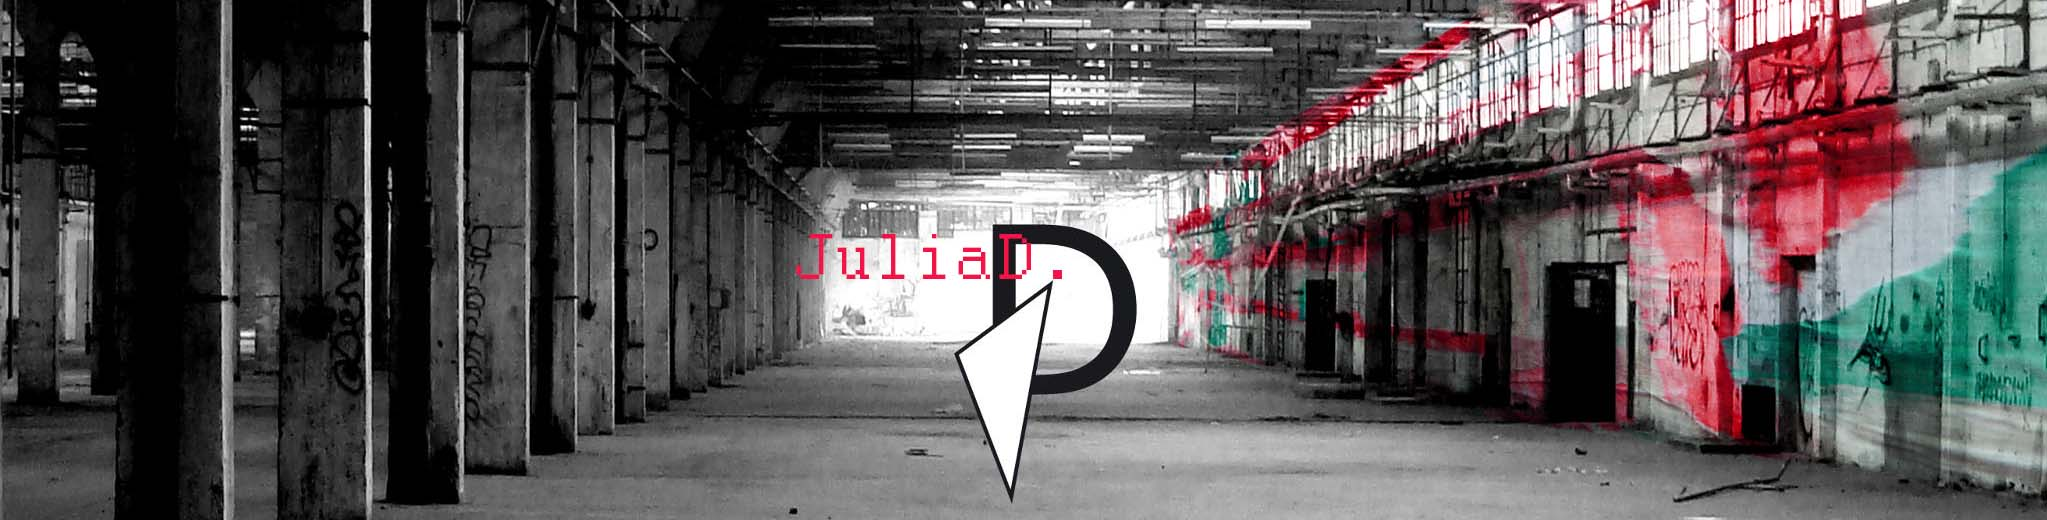 JULIAD BLOG &  ESHOP